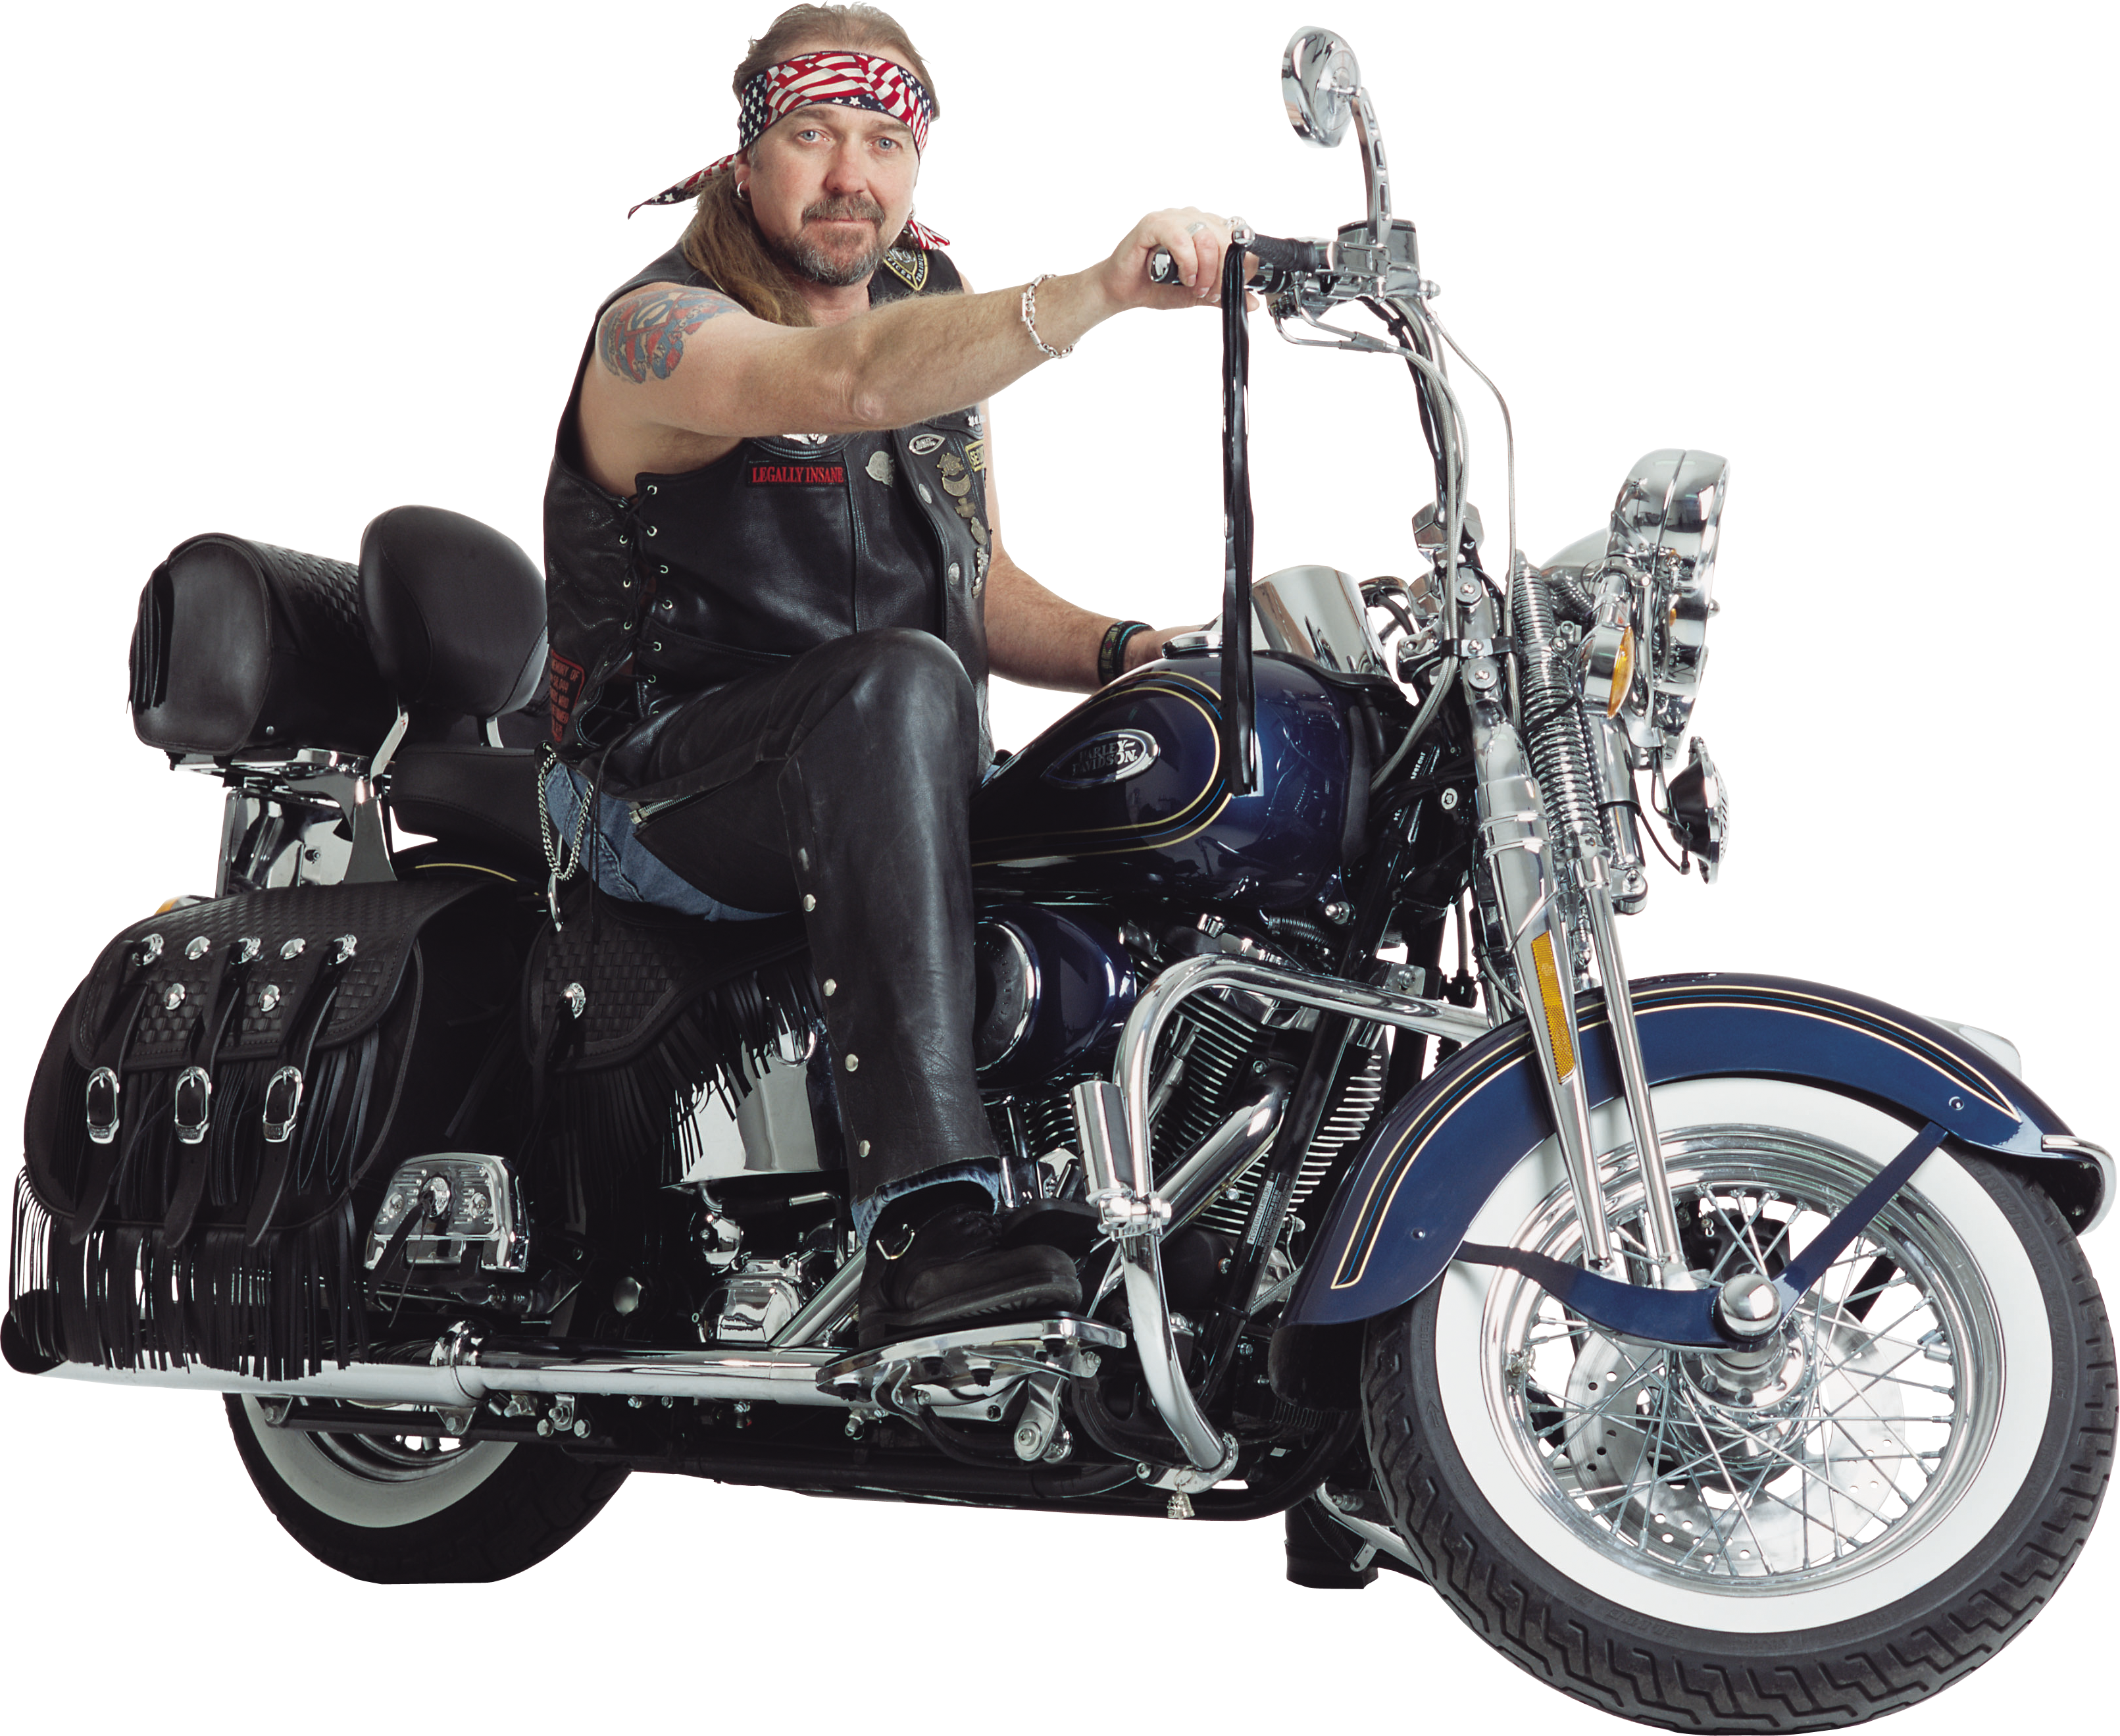 Png images free pictures. Motorcycle clipart motorcycle driver